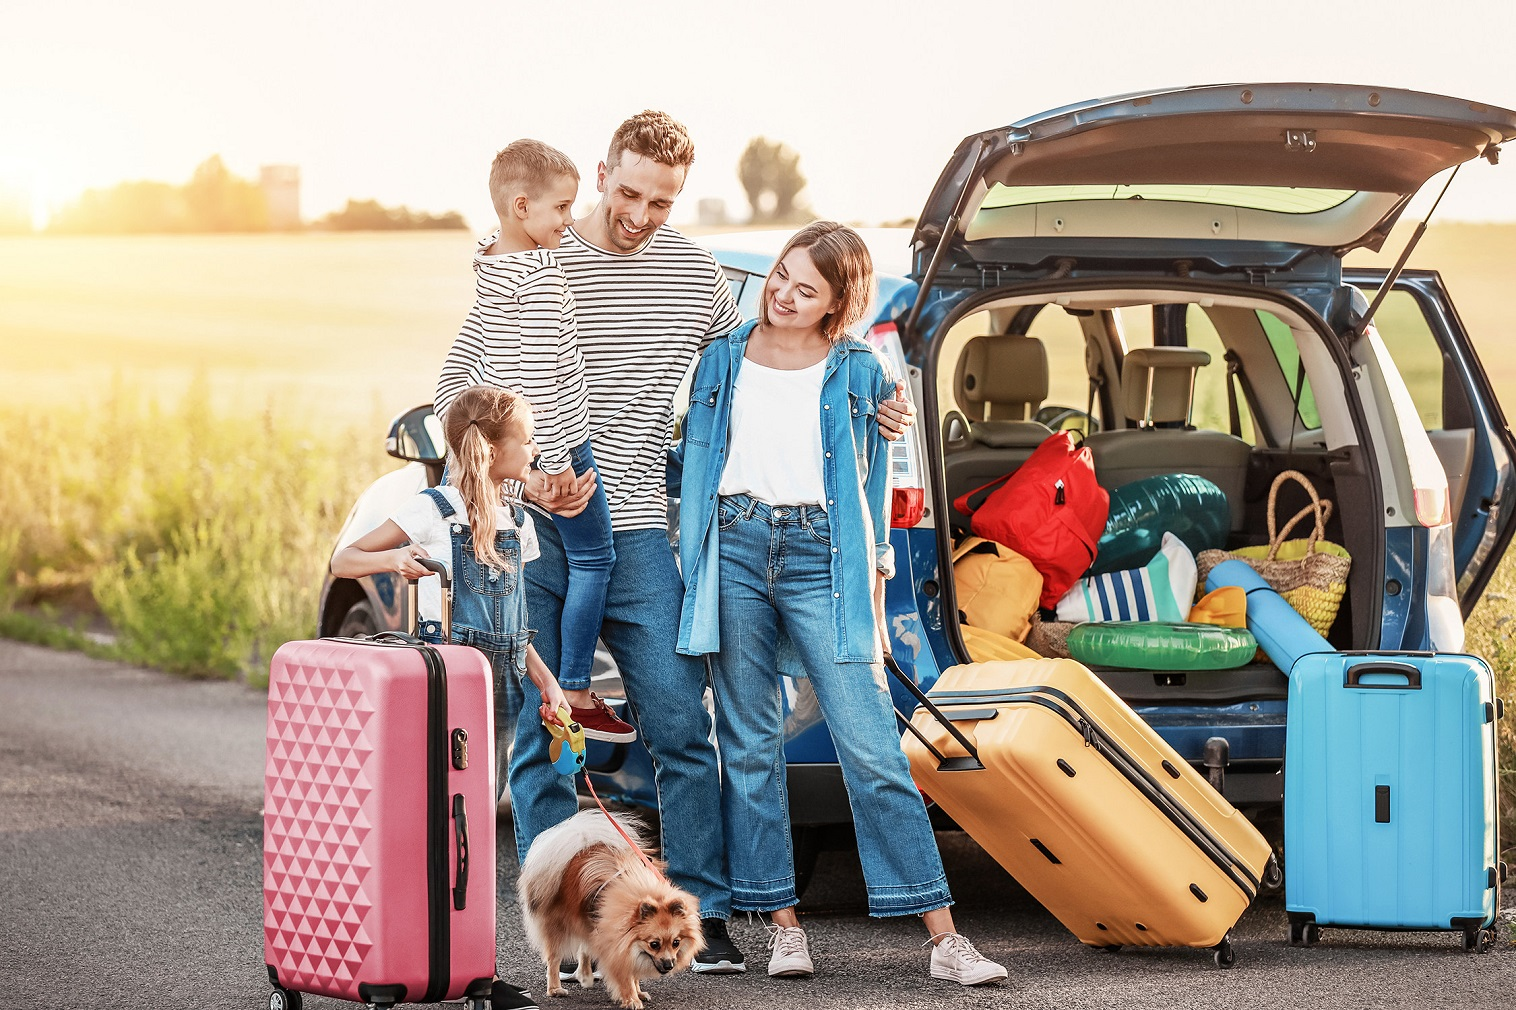 Vacations can be perfect opportunities to spend quality time with the family.